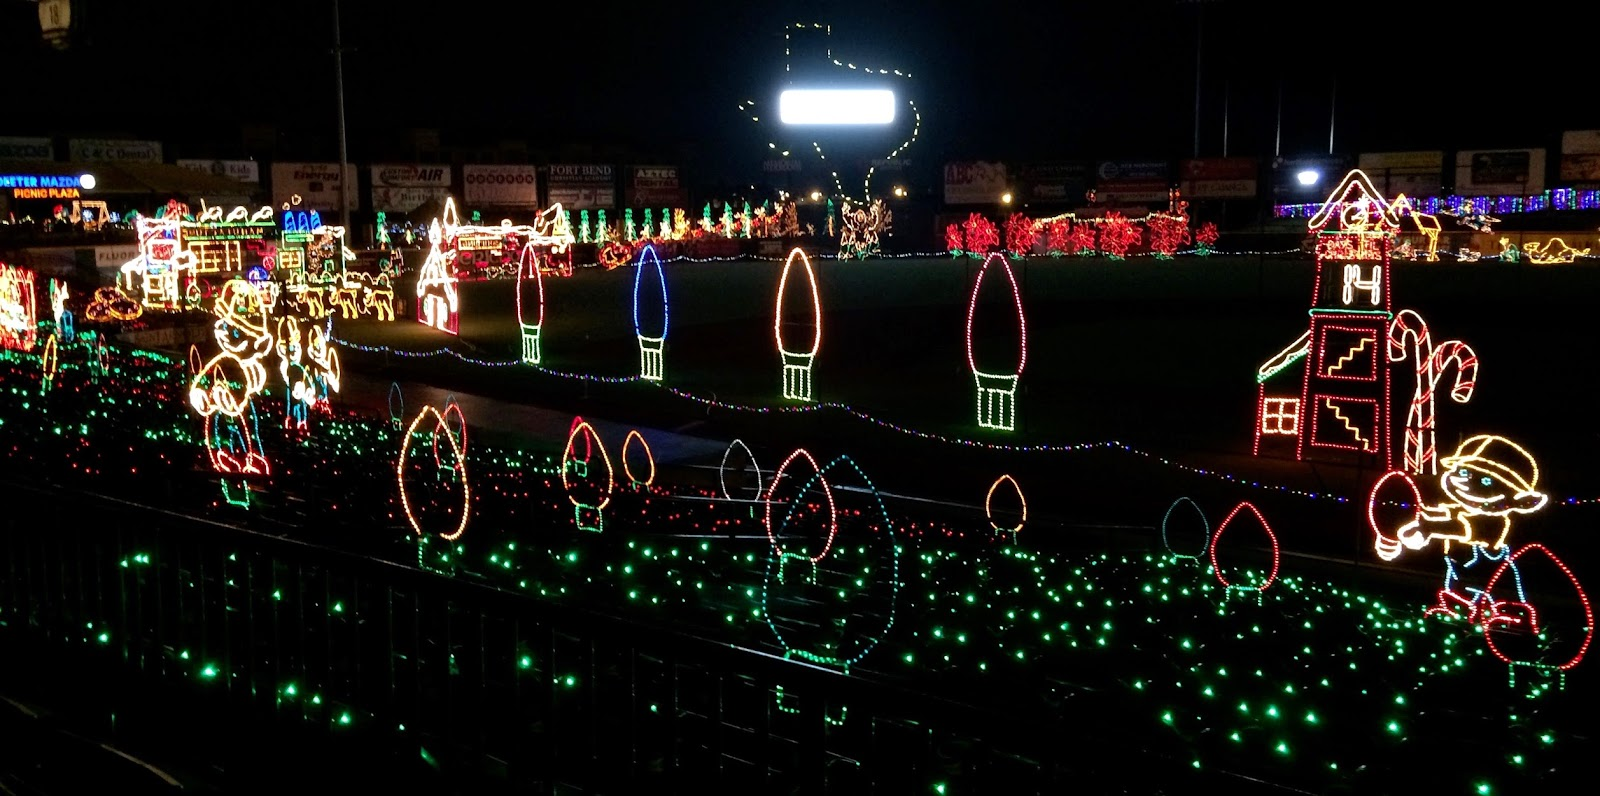 Exhibit B: Sugar Land Holiday Lights !